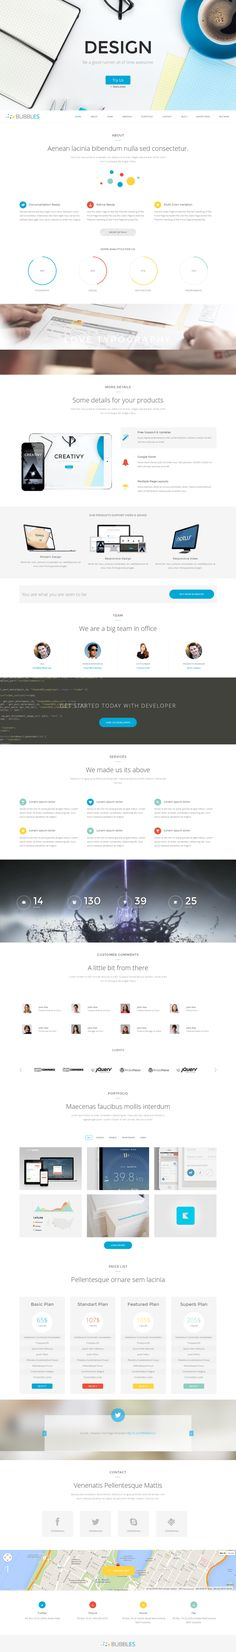 Bubbles #Parallax #OnePage #Wordpress Theme by mona lisa, via Behance